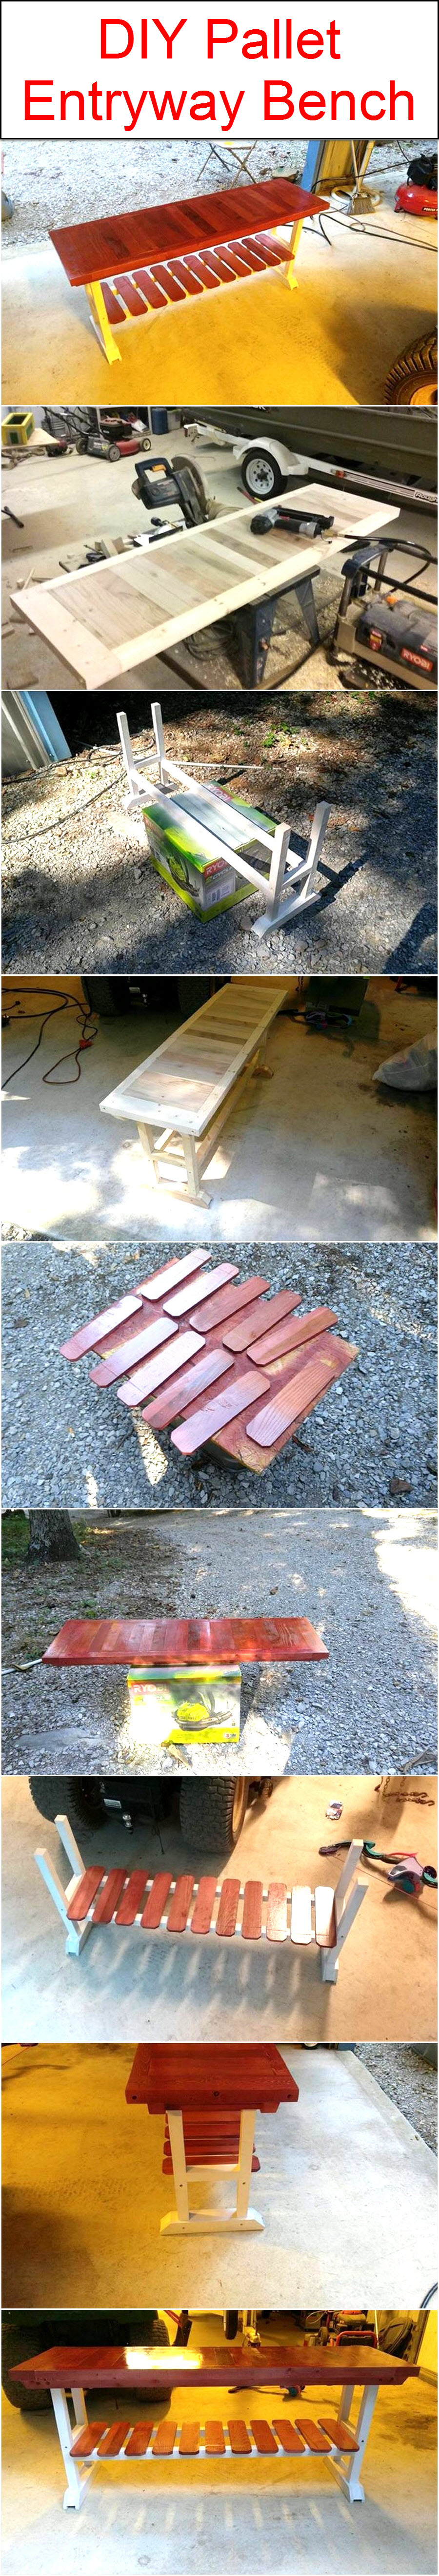 diy-pallet-entryway-bench